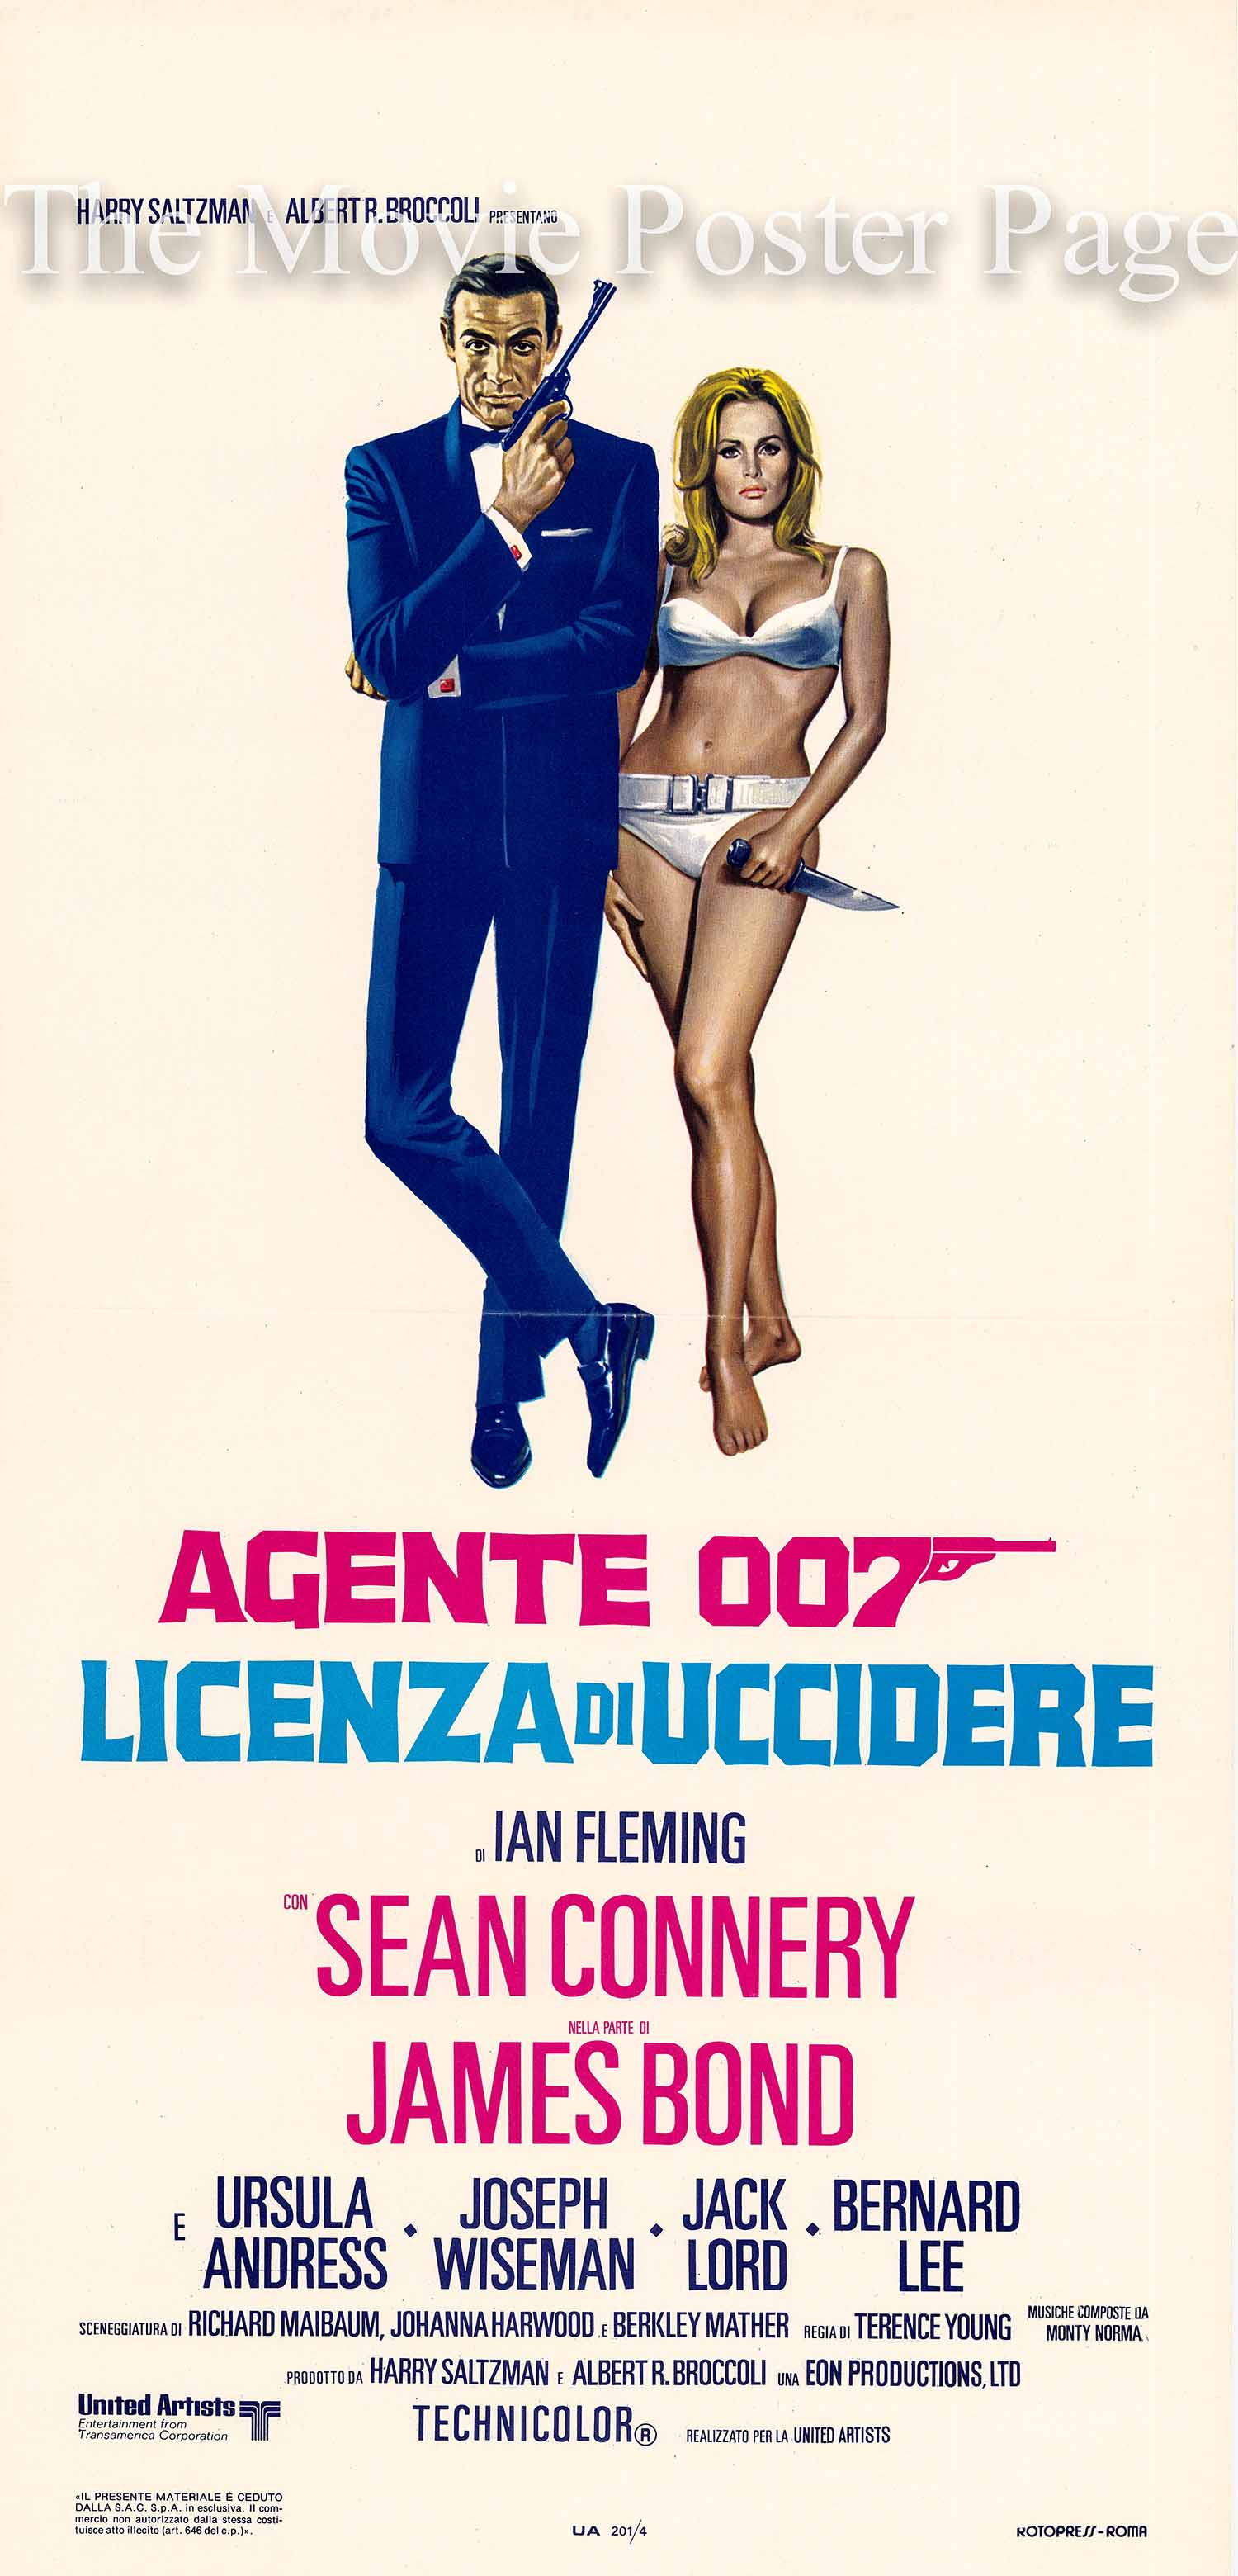 Pictured is an Italian locandina poster made to promote a 1971 rereleaes of the 1962 Terence Young film Dr. No starring sean connery as James Bond.